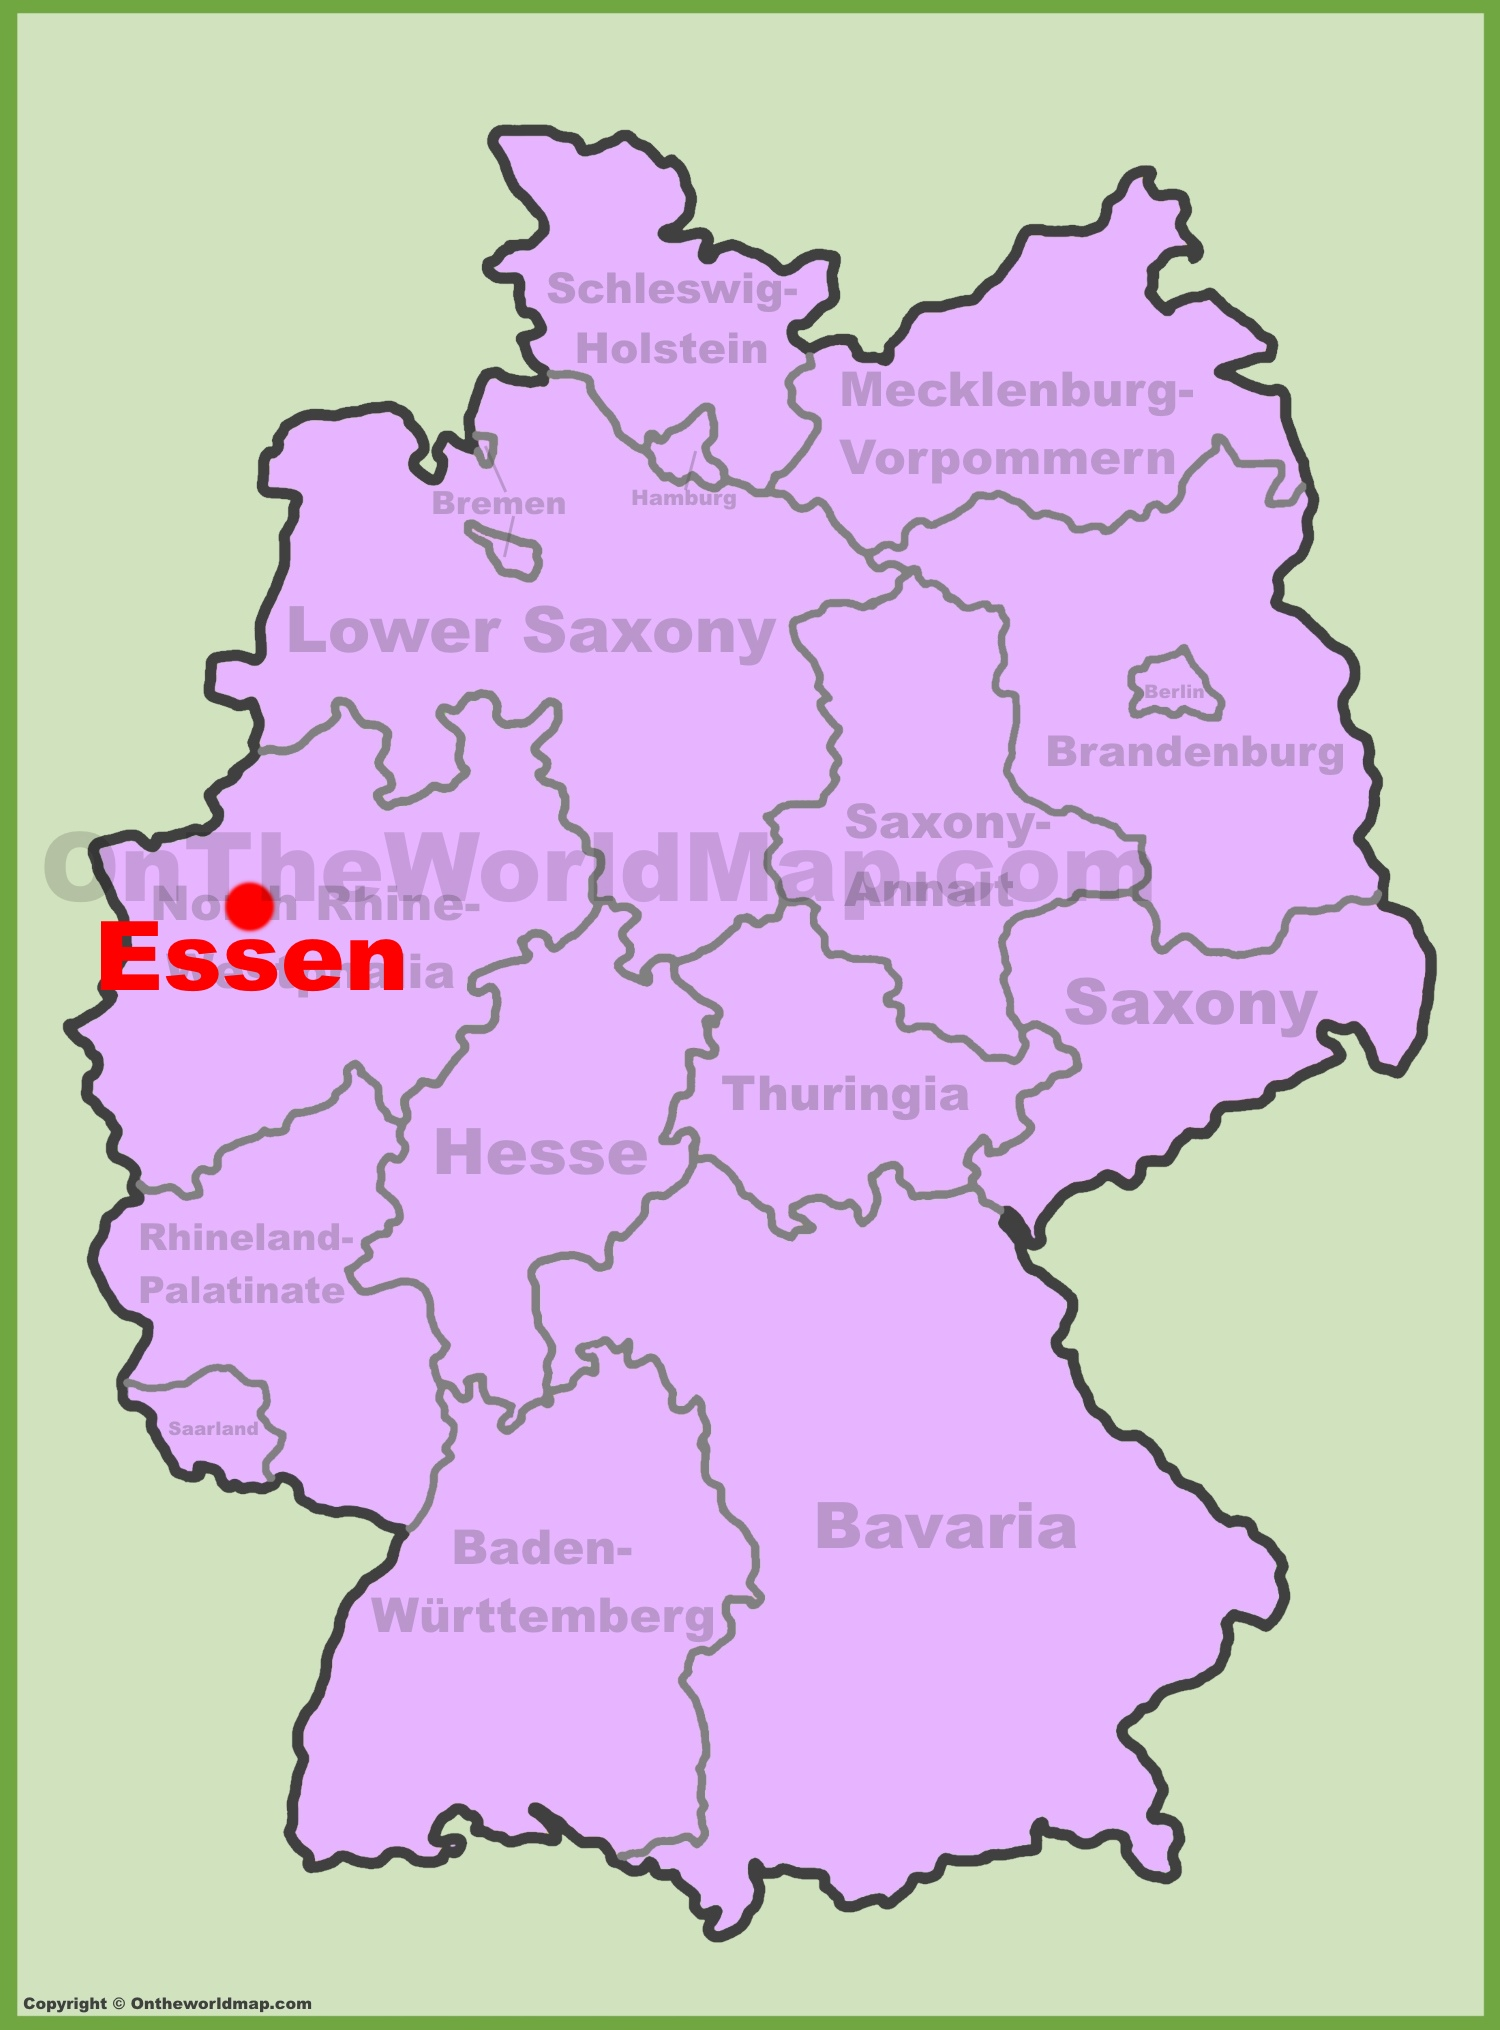 Essen Location On The Germany Map